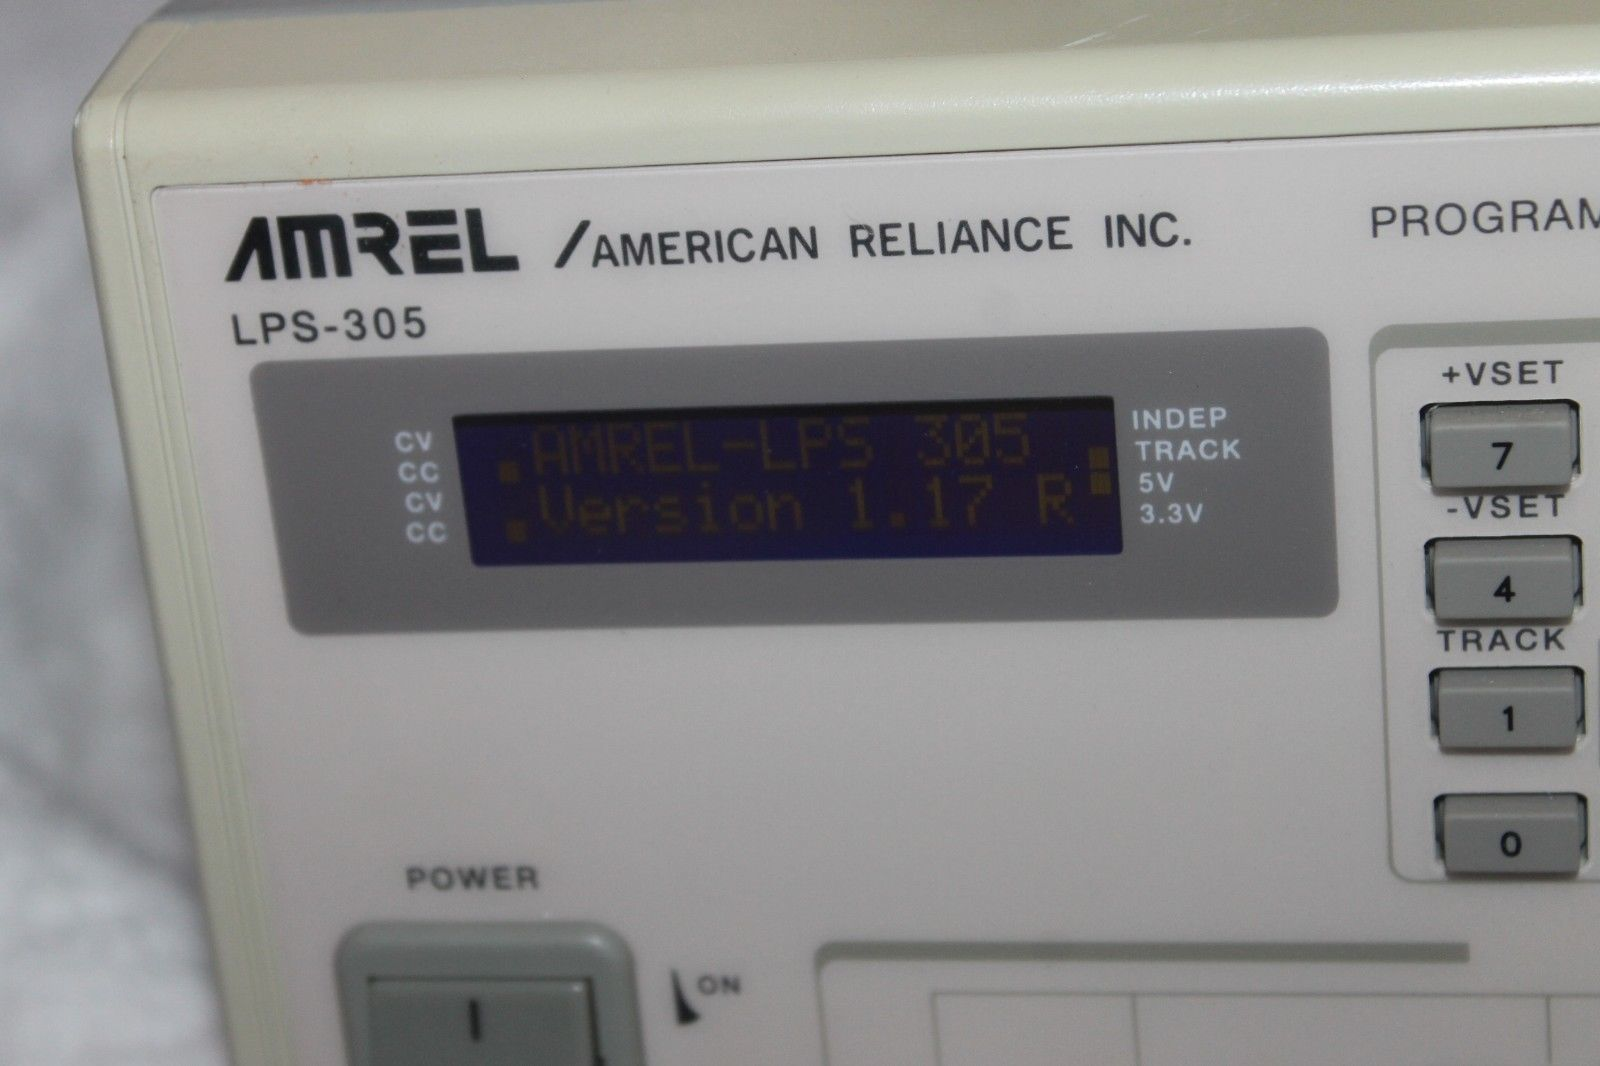 Amrel American Reliance Inc LPS-305 and 50 similar items